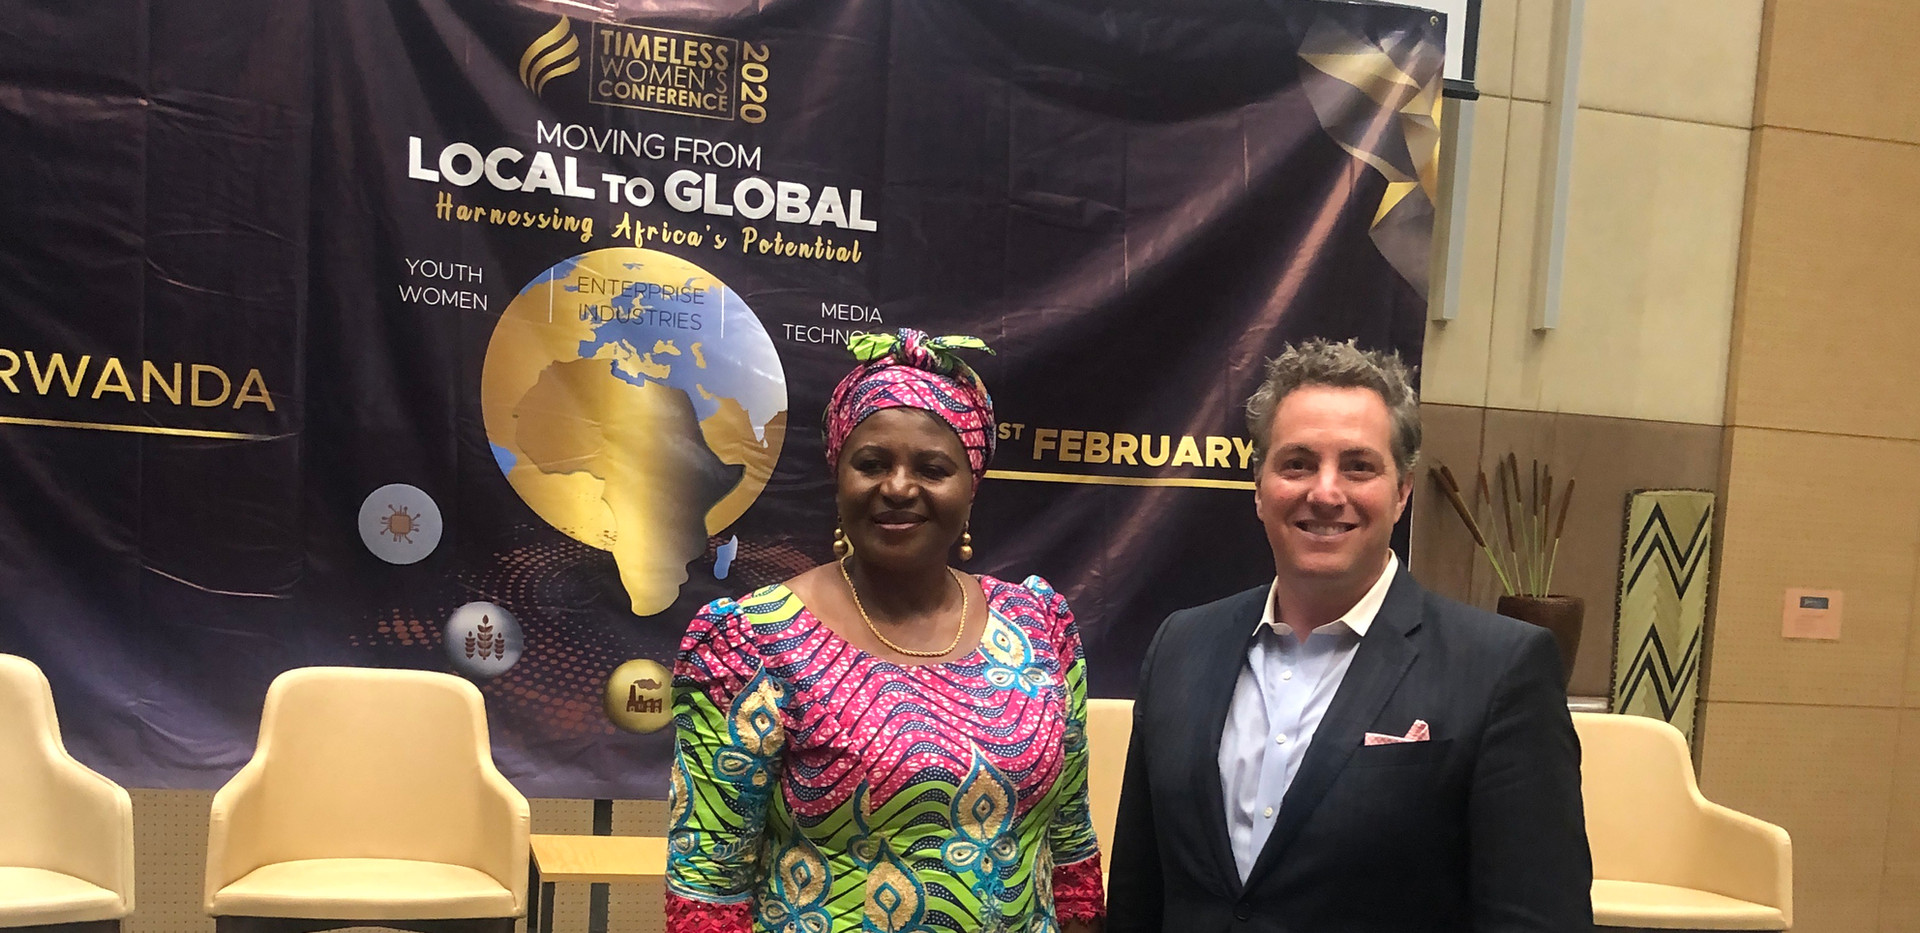 First Lady of Malawi and Dr. Rollan Robe